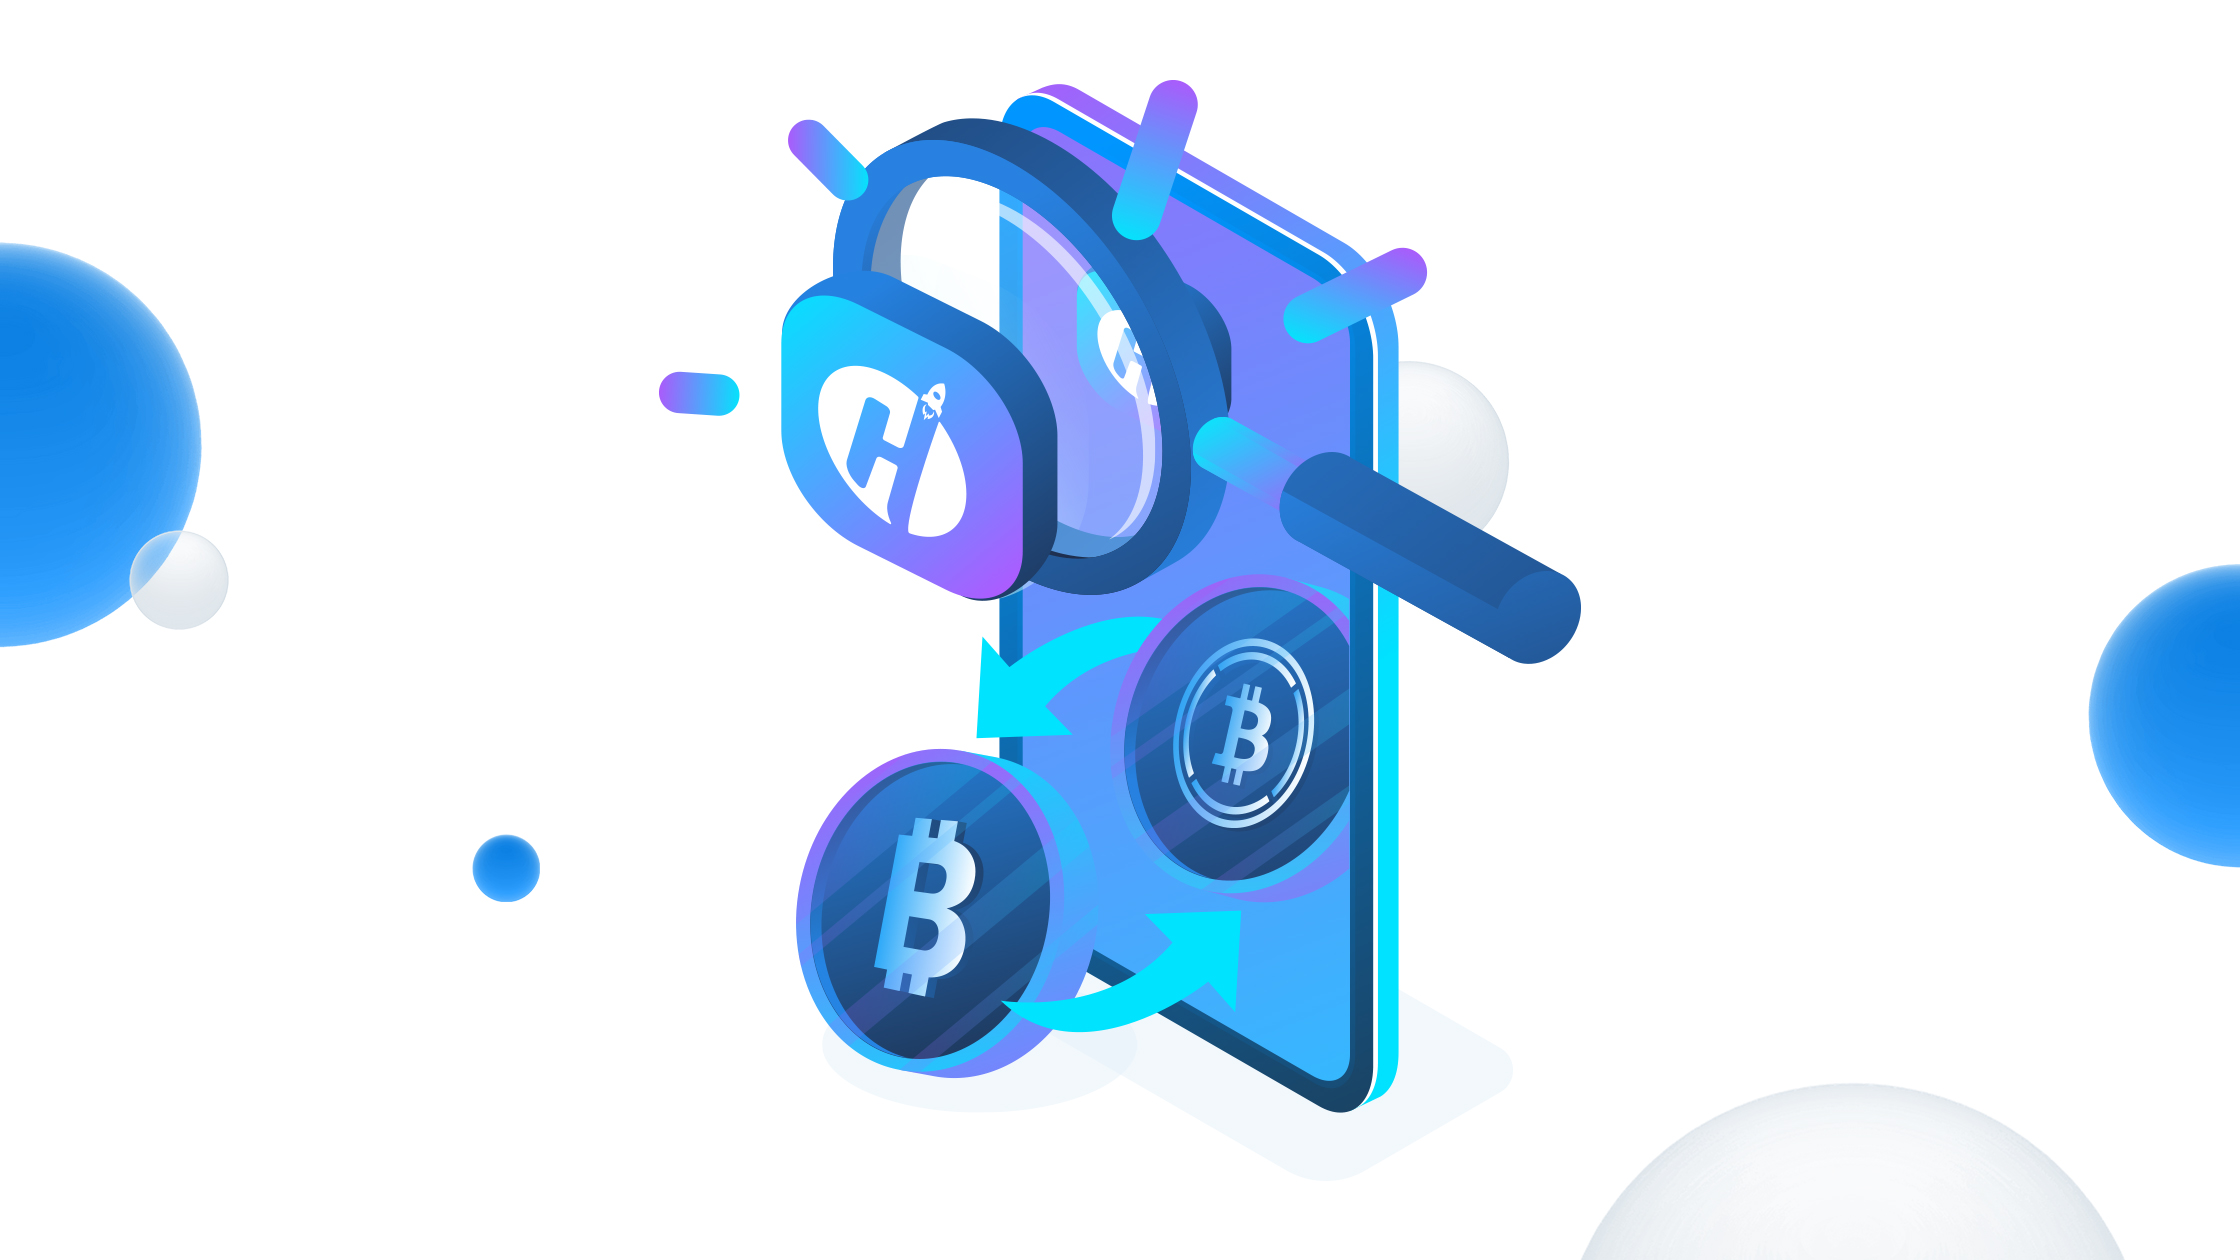 Step-by-Step Guide on How to Swap Tokens on Hodlnaut's iOS Mobile App